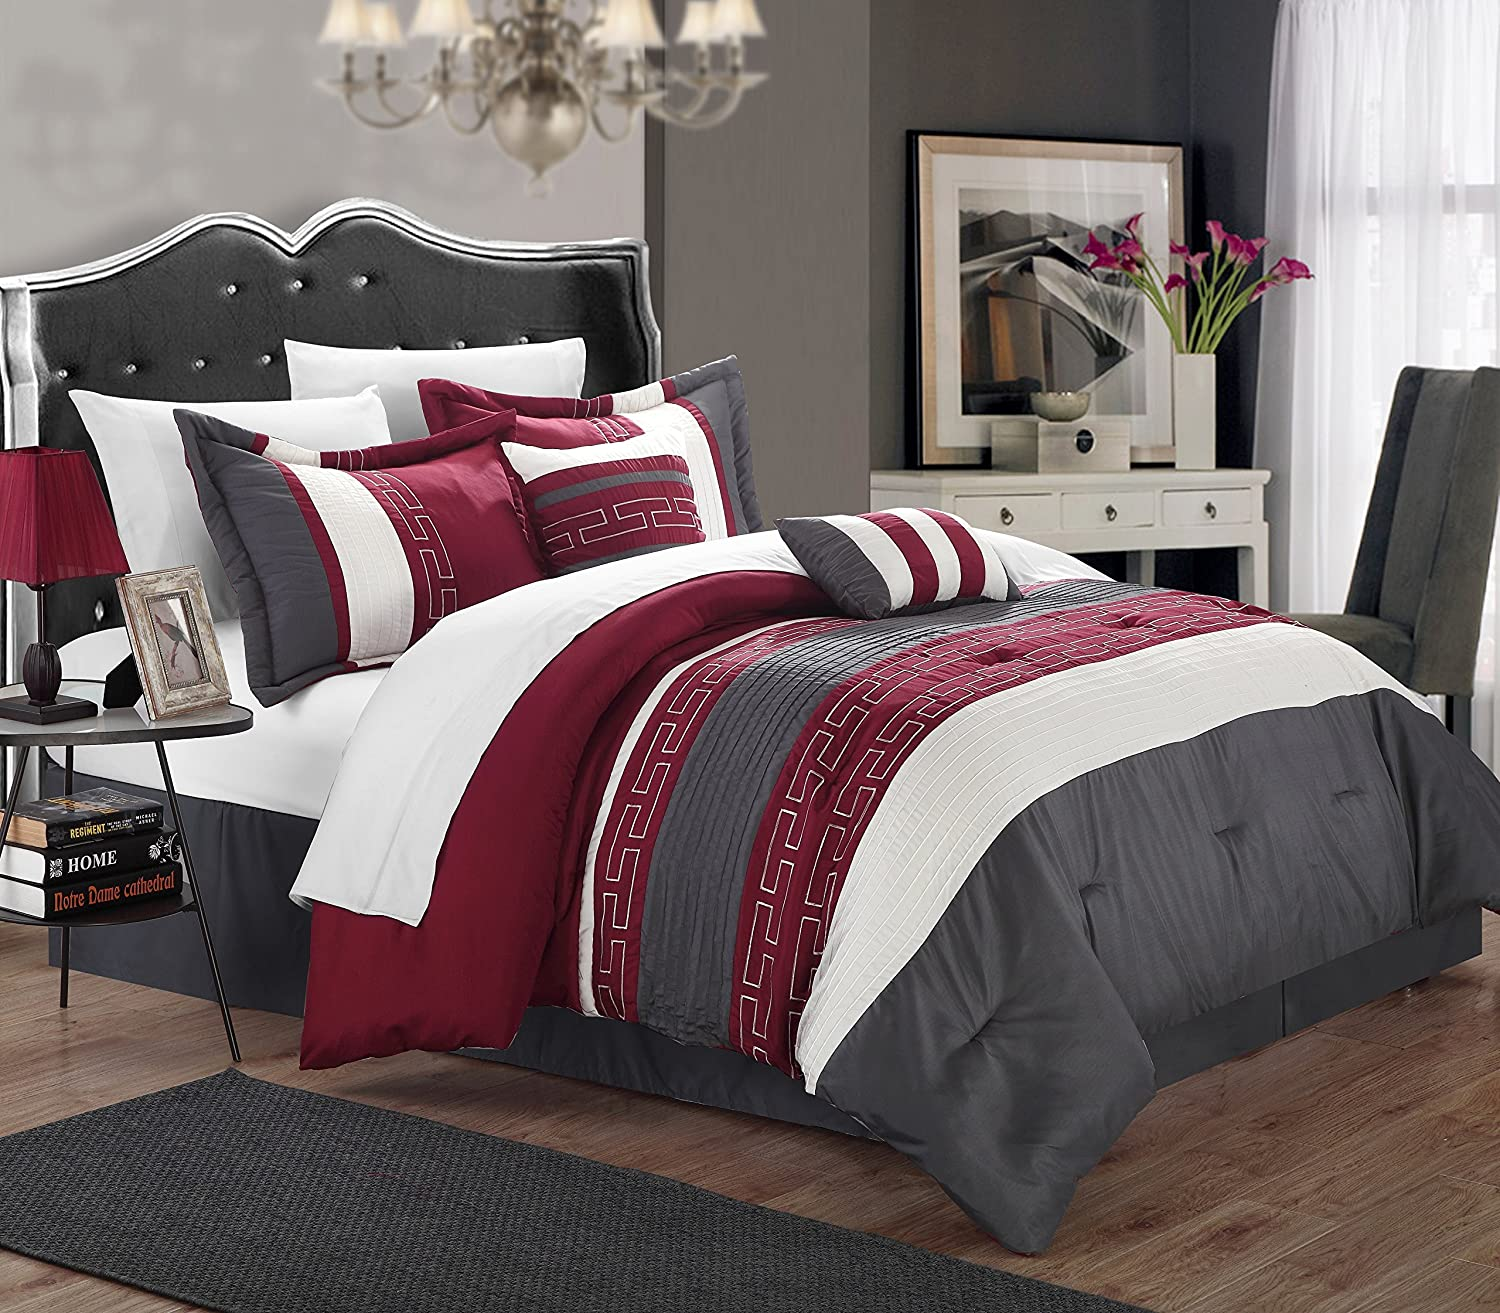 Chic Home Carlton 6-Piece Comforter Set, King Size, Burgundy CS1212-509-AN